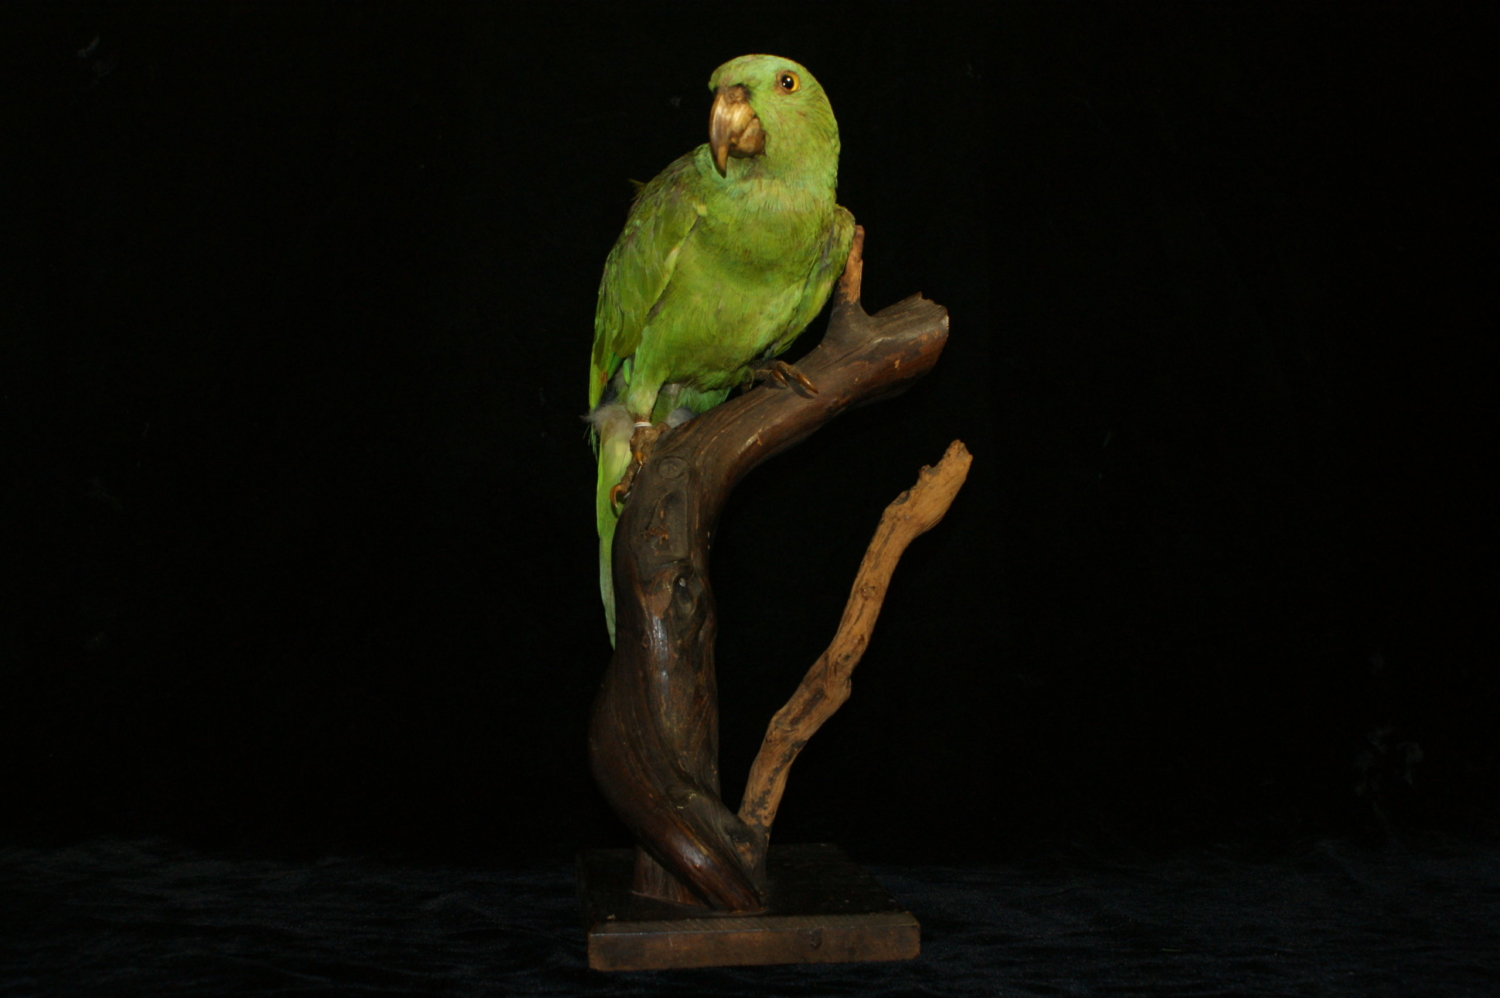 Green parrot specimen mounted on a branch.